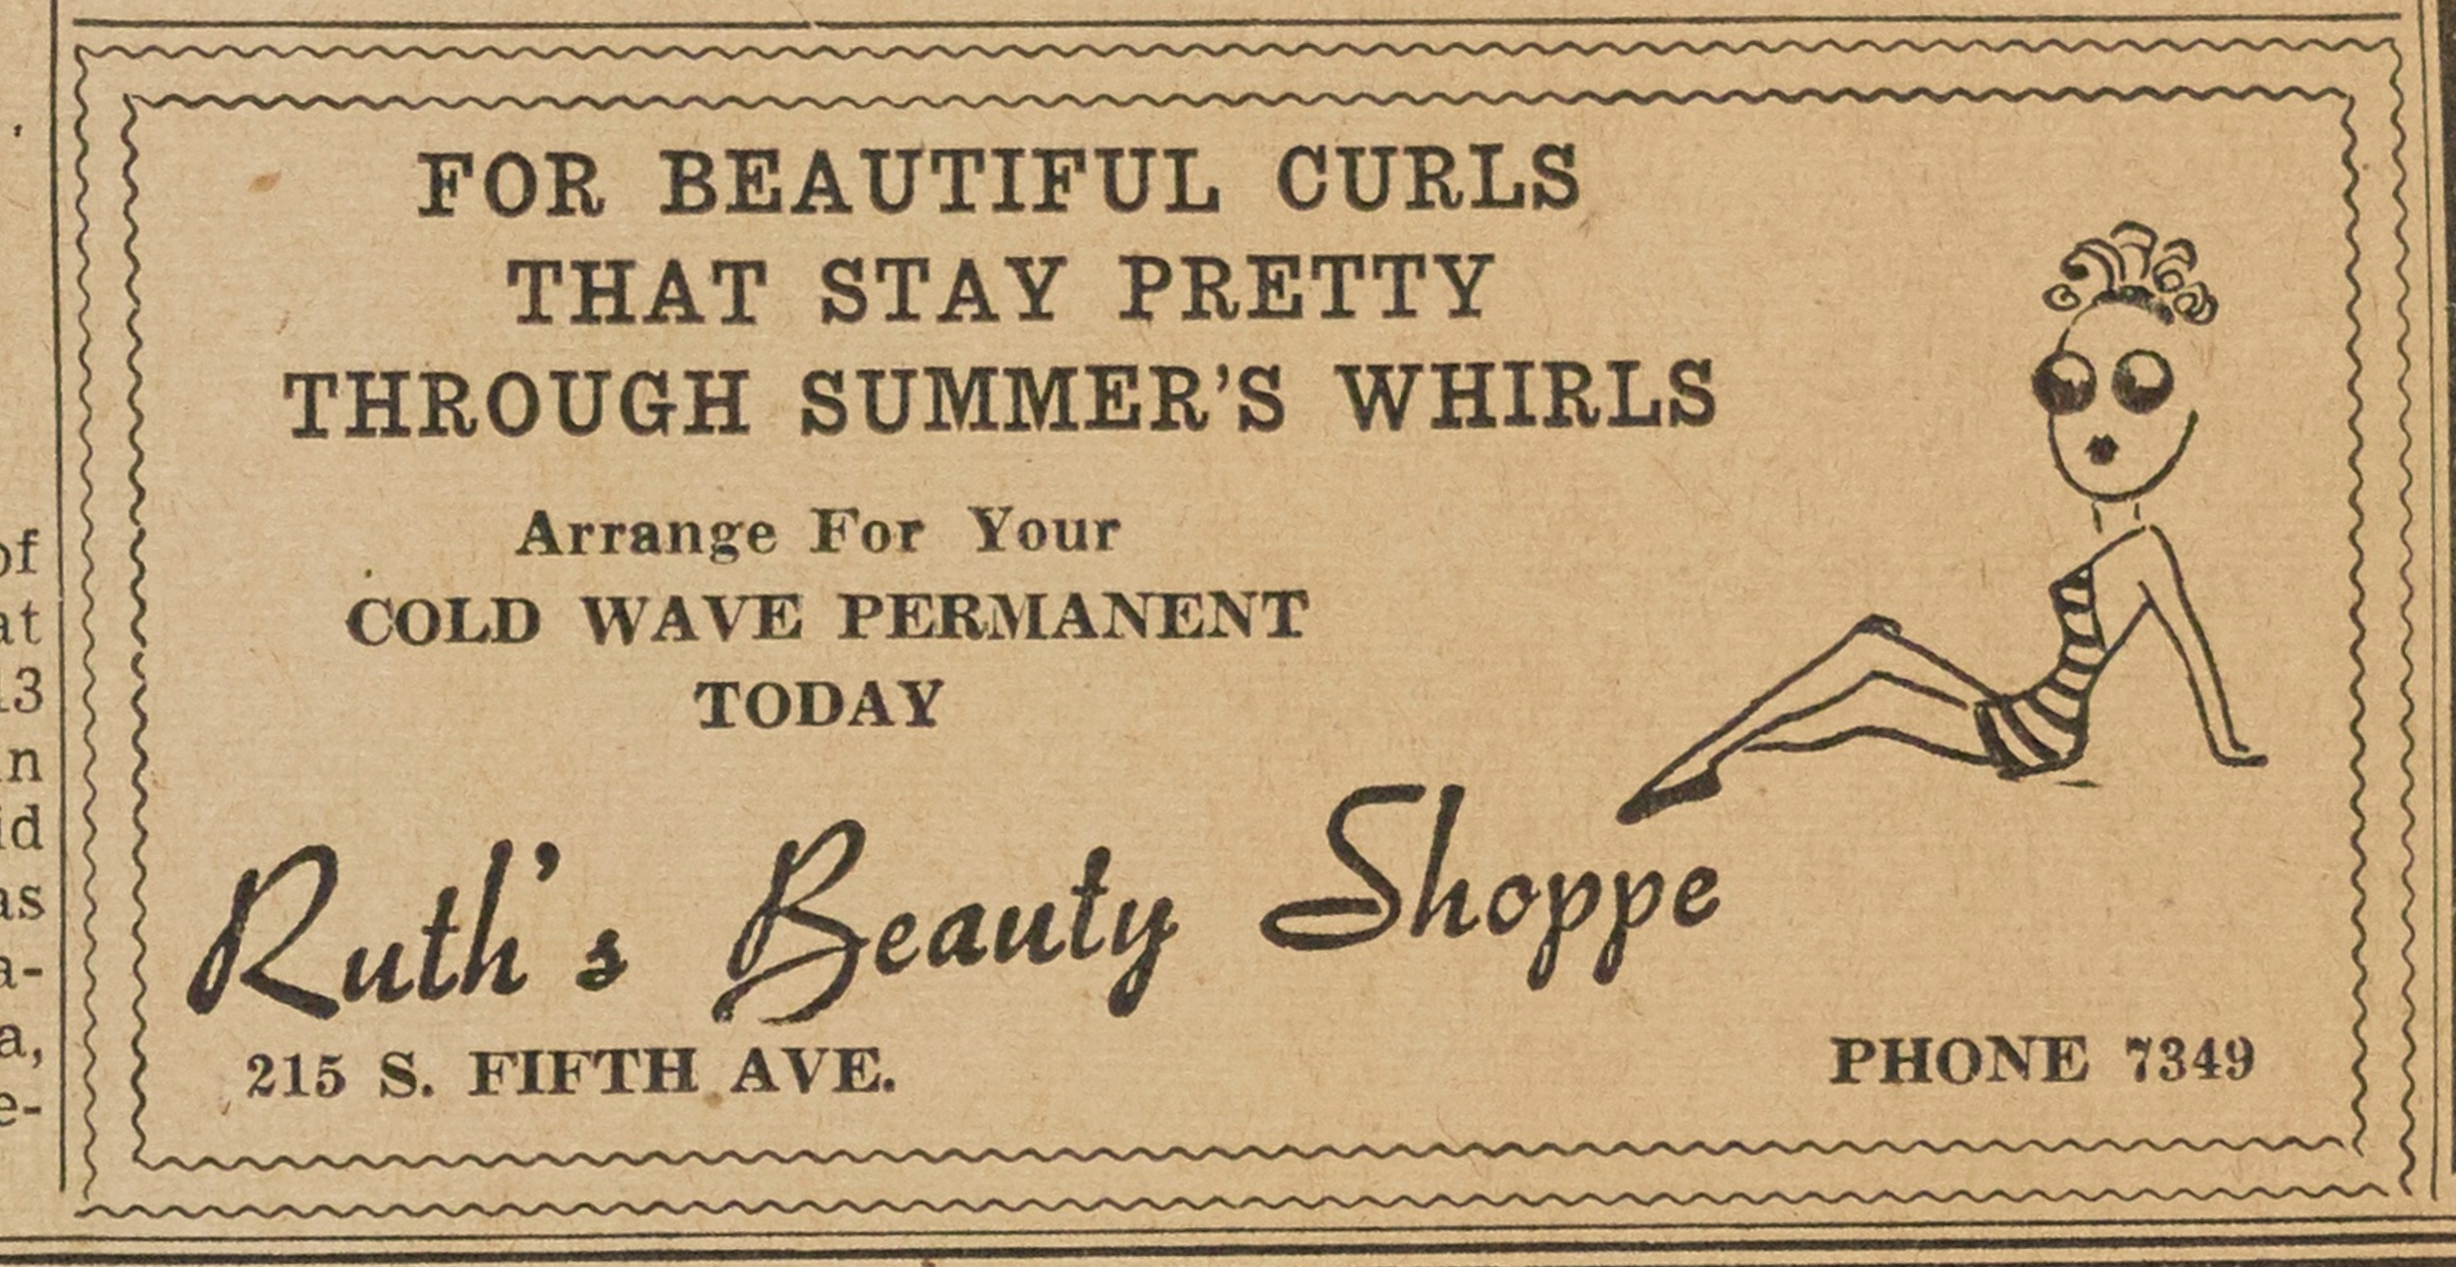 Ruth's Beauty Shoppe image